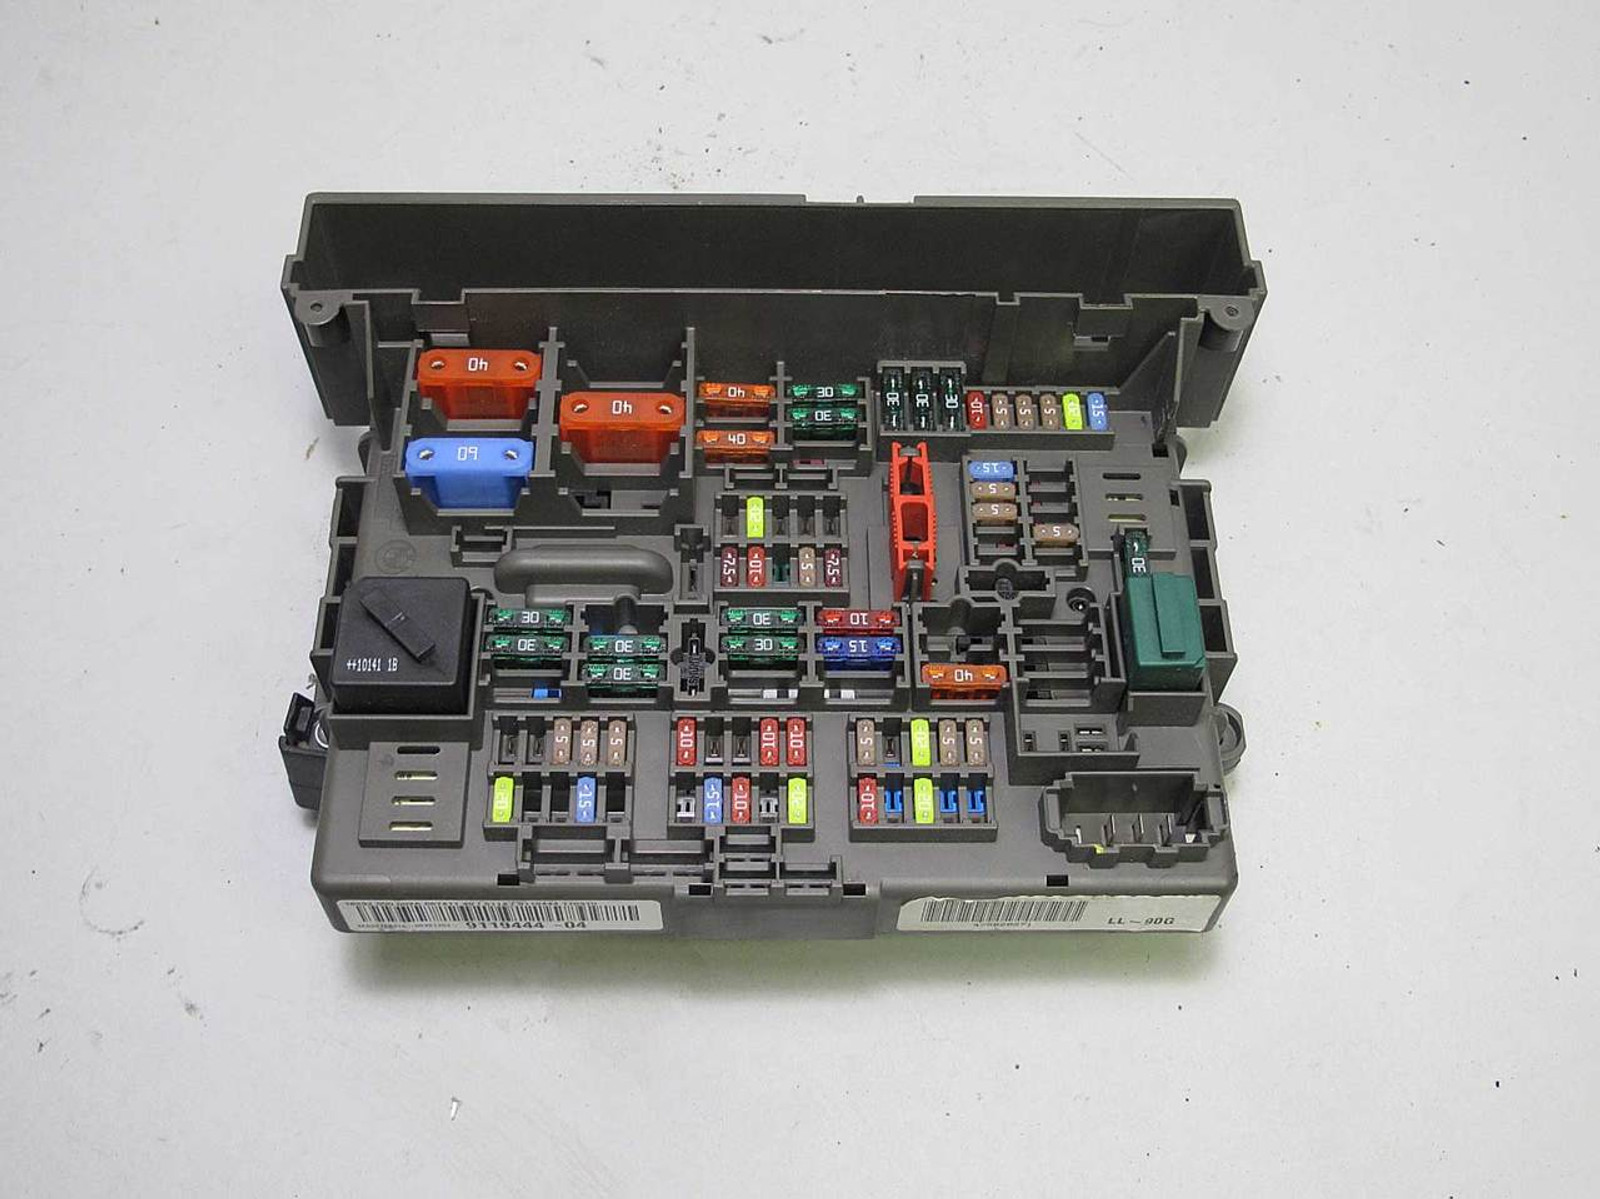 Bmw E88 Fuse Box Block And Schematic Diagrams \u2022 Fiat 500 Fuse Box  Location Fuse Box Location On Bmw E90